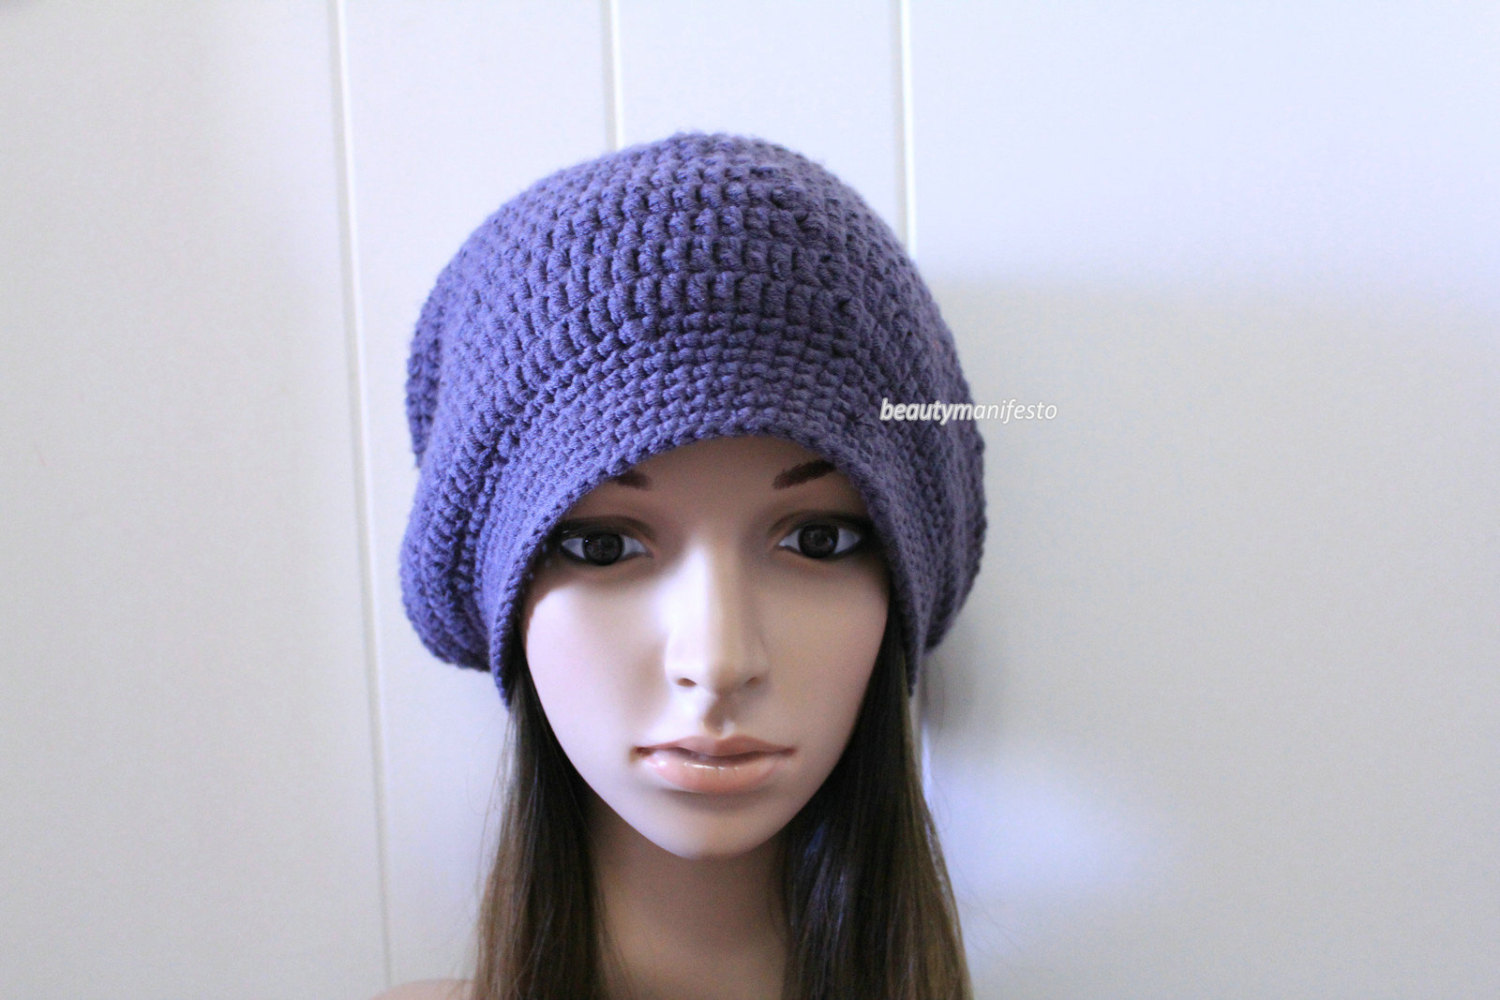 a2c2dcd3168 Hand Knit Hat - Slouchy Hat - Oversized Hat - Chunky Knit-Crochet Slouchy  Beanie Hat for Women and Men